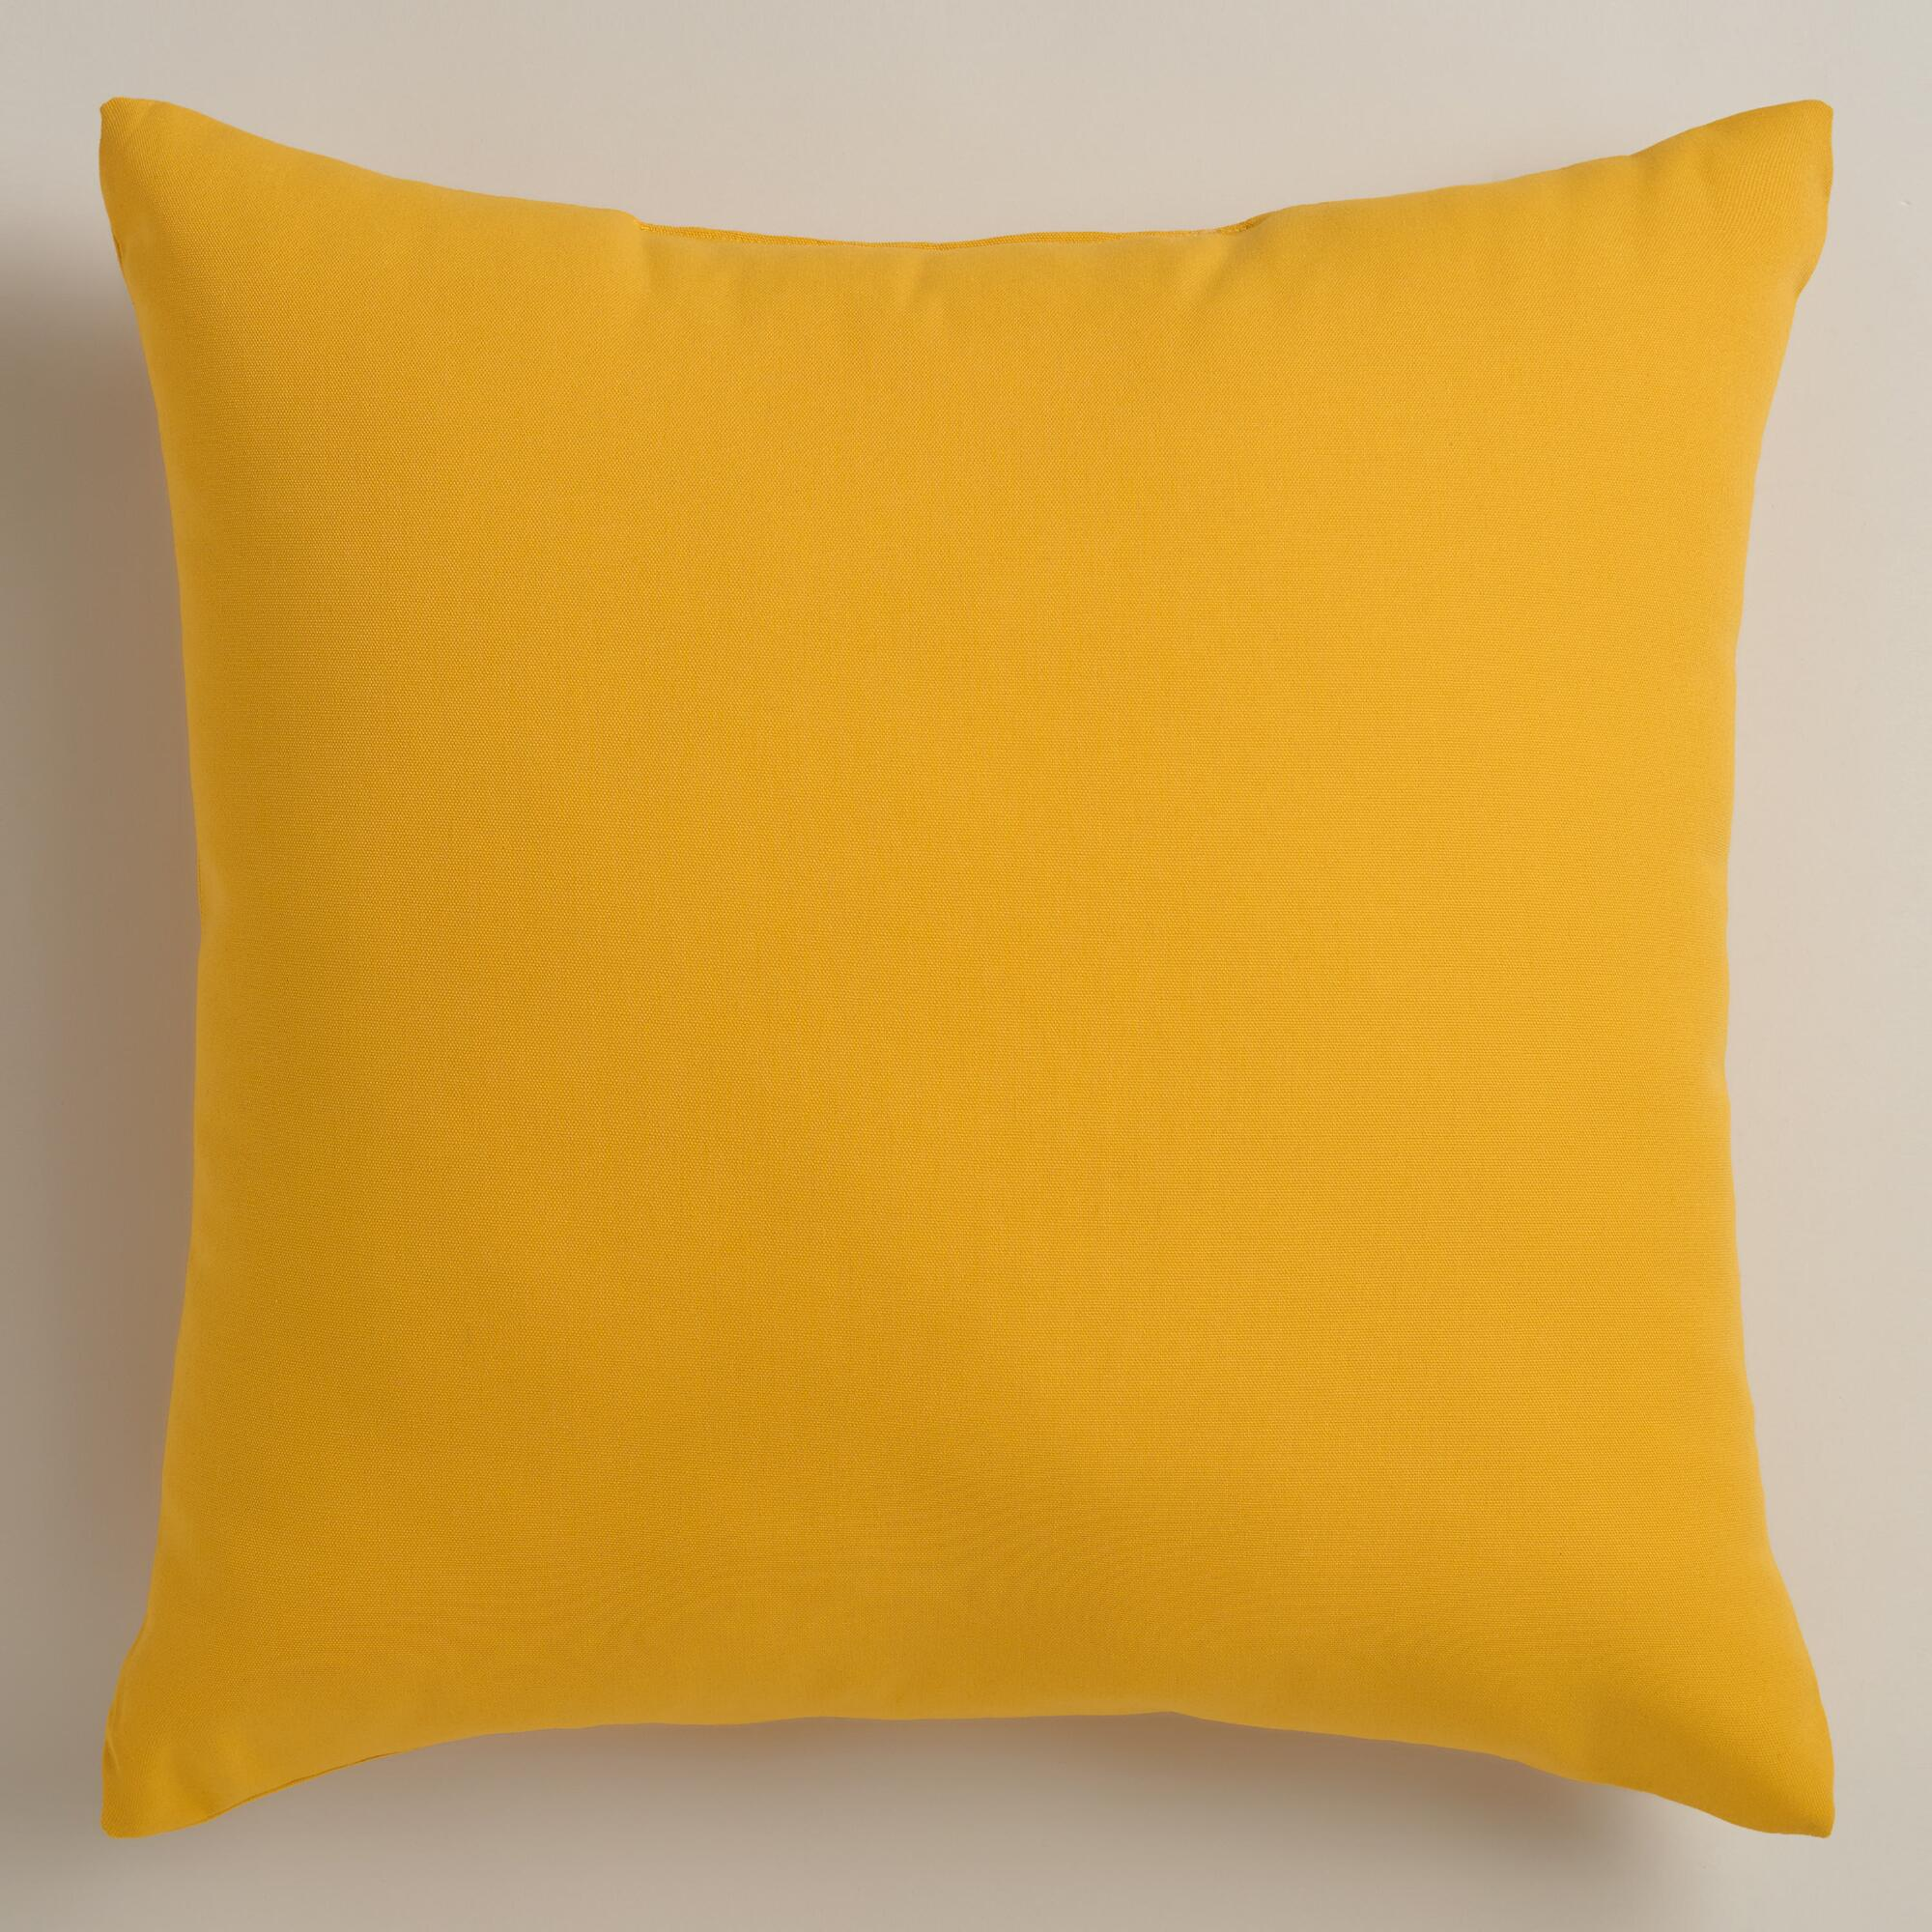 Throw Pillows Newport : Yellow Outdoor Throw Pillows World Market